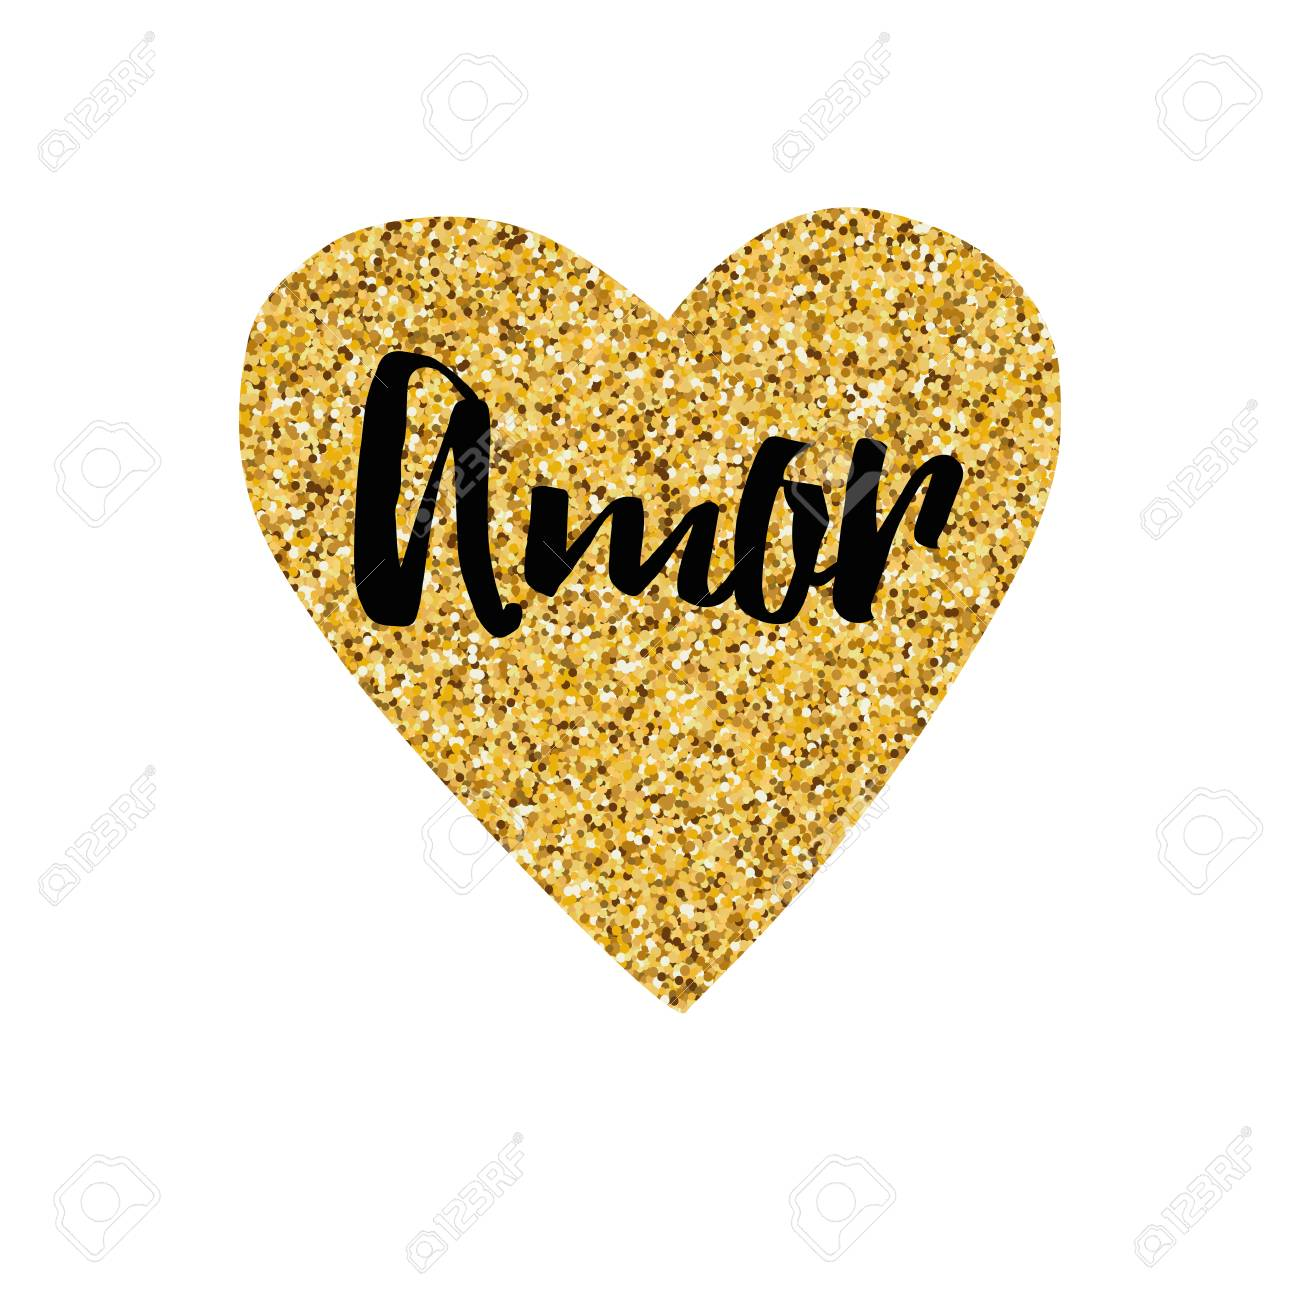 Hand Drawn Gold Sparkle Heart Text Love Typography Print In Black Color Design